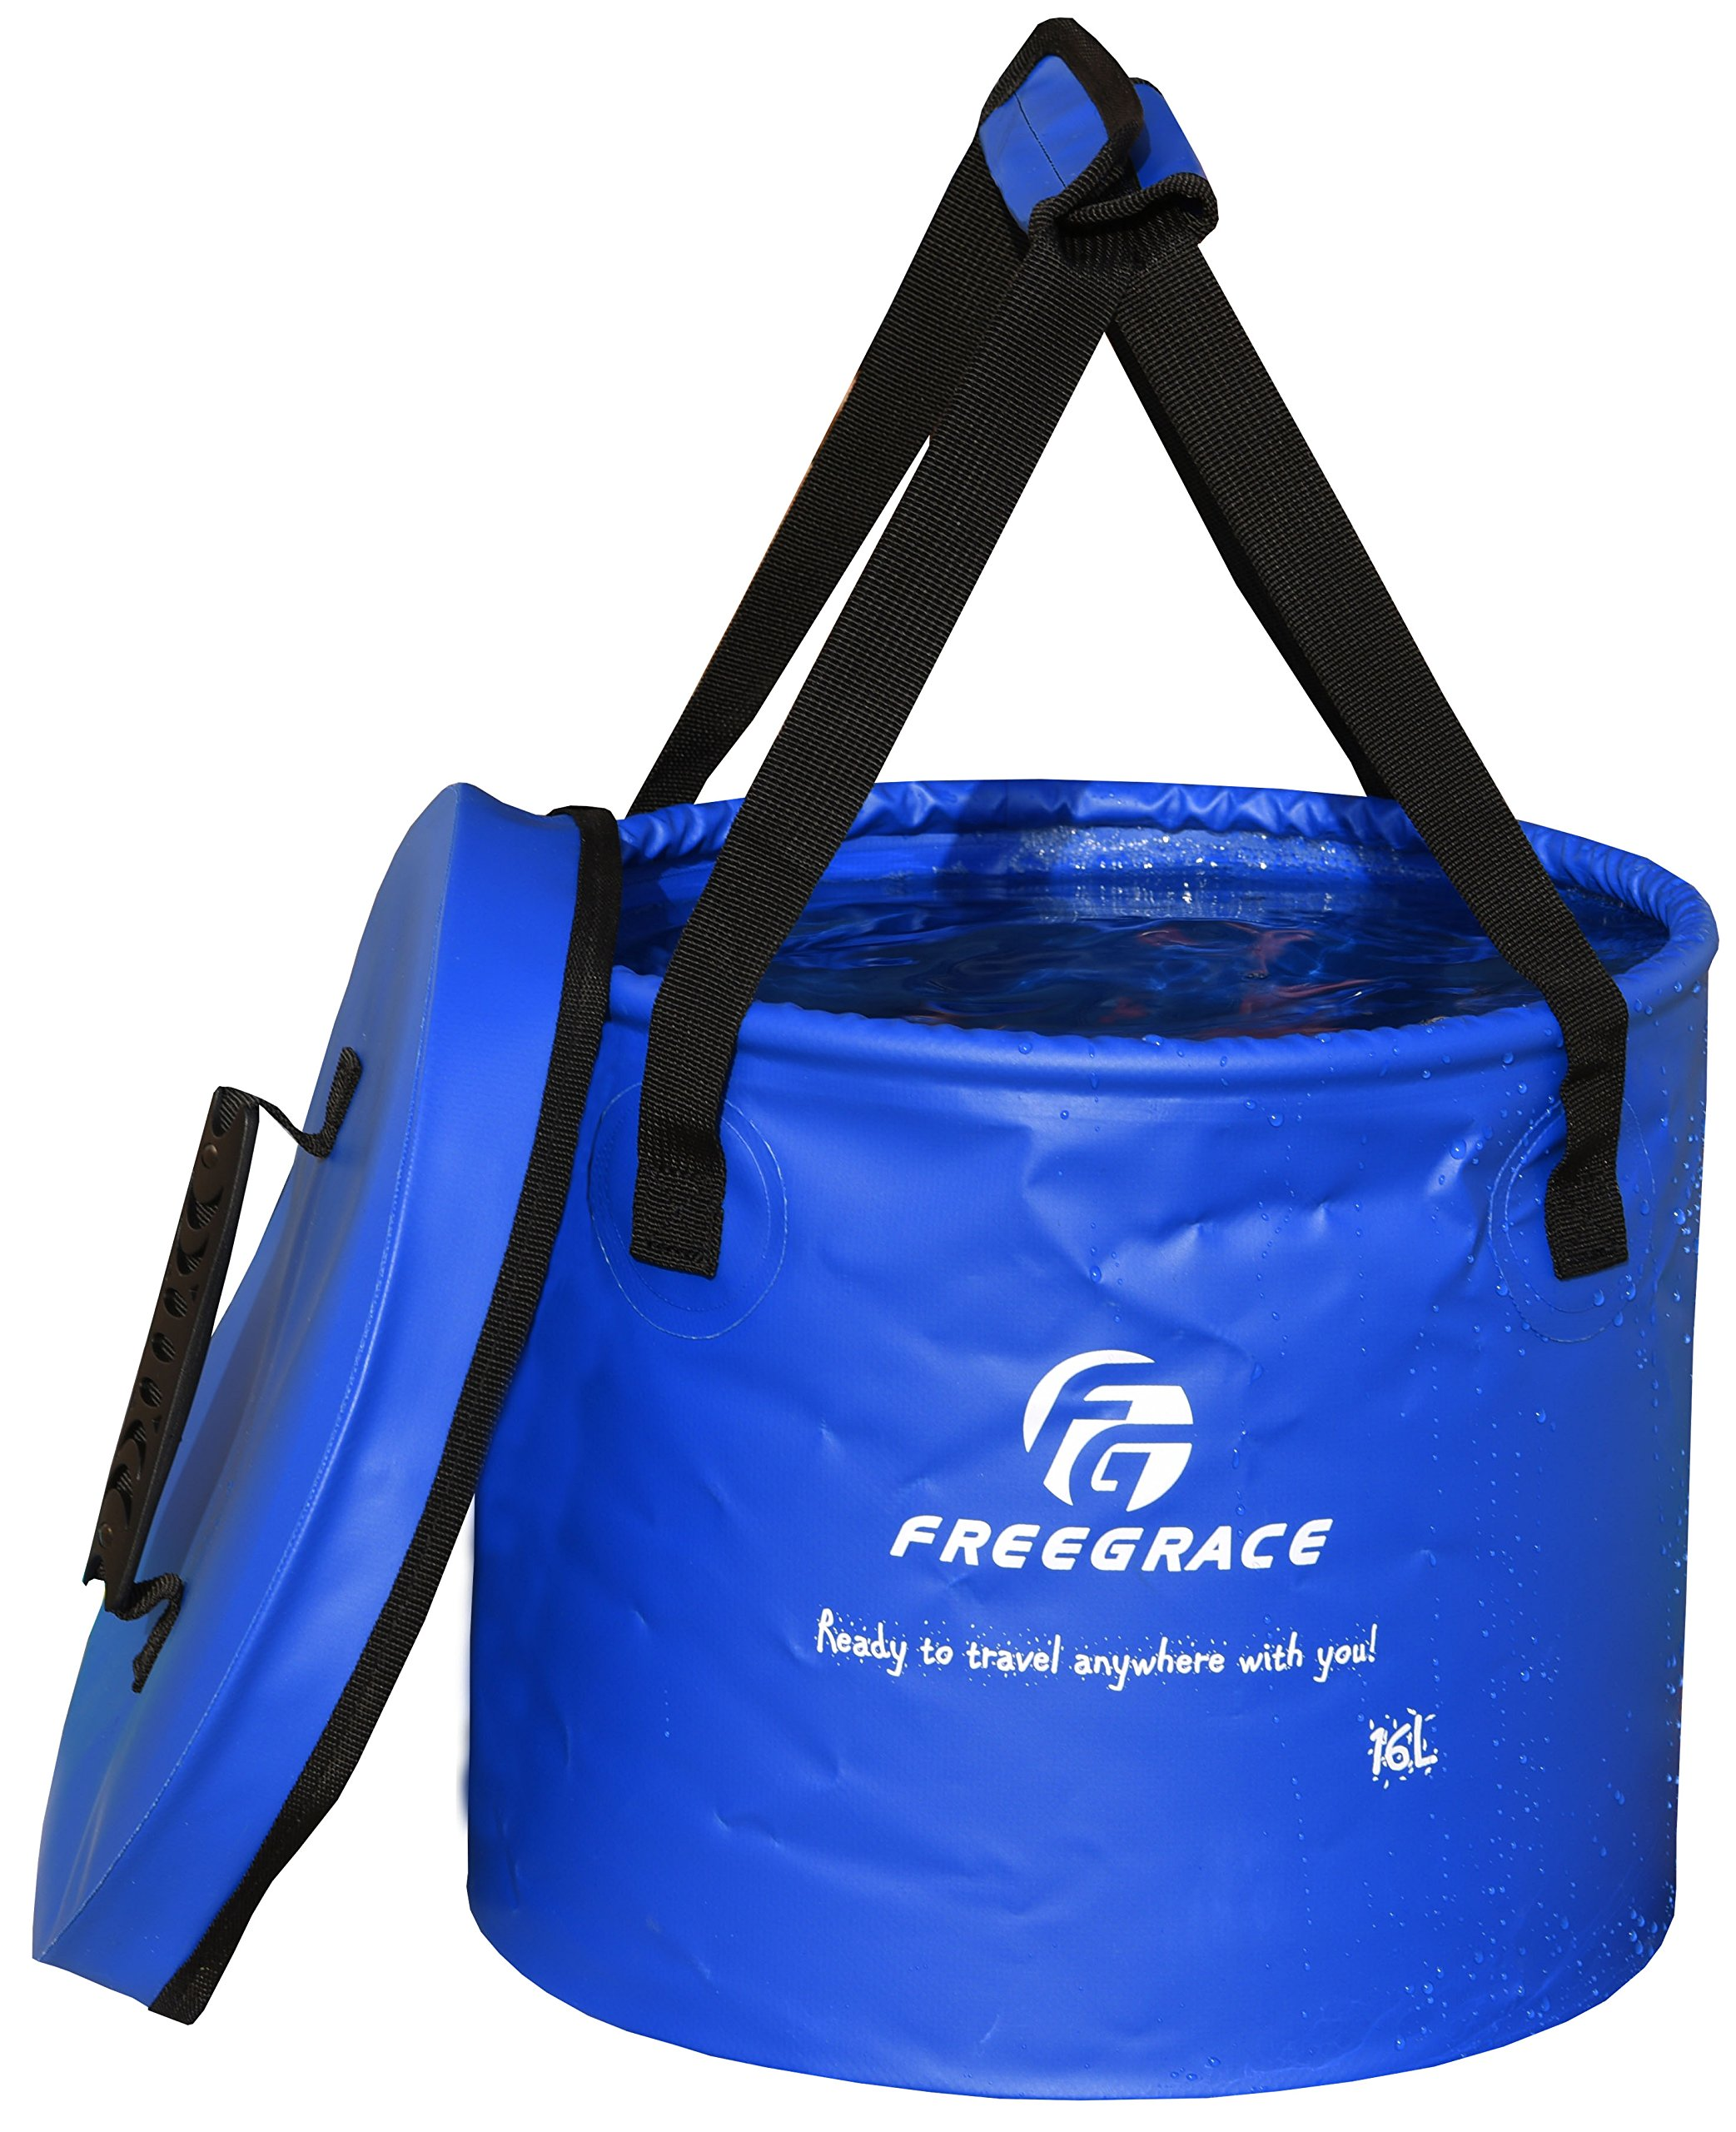 Freegrace Premium Collapsible Bucket -Multifunctional Folding Bucket -Perfect Gear for Camping, Hiking & Travel (Navy Blue, 16L(Upgraded)) by Freegrace